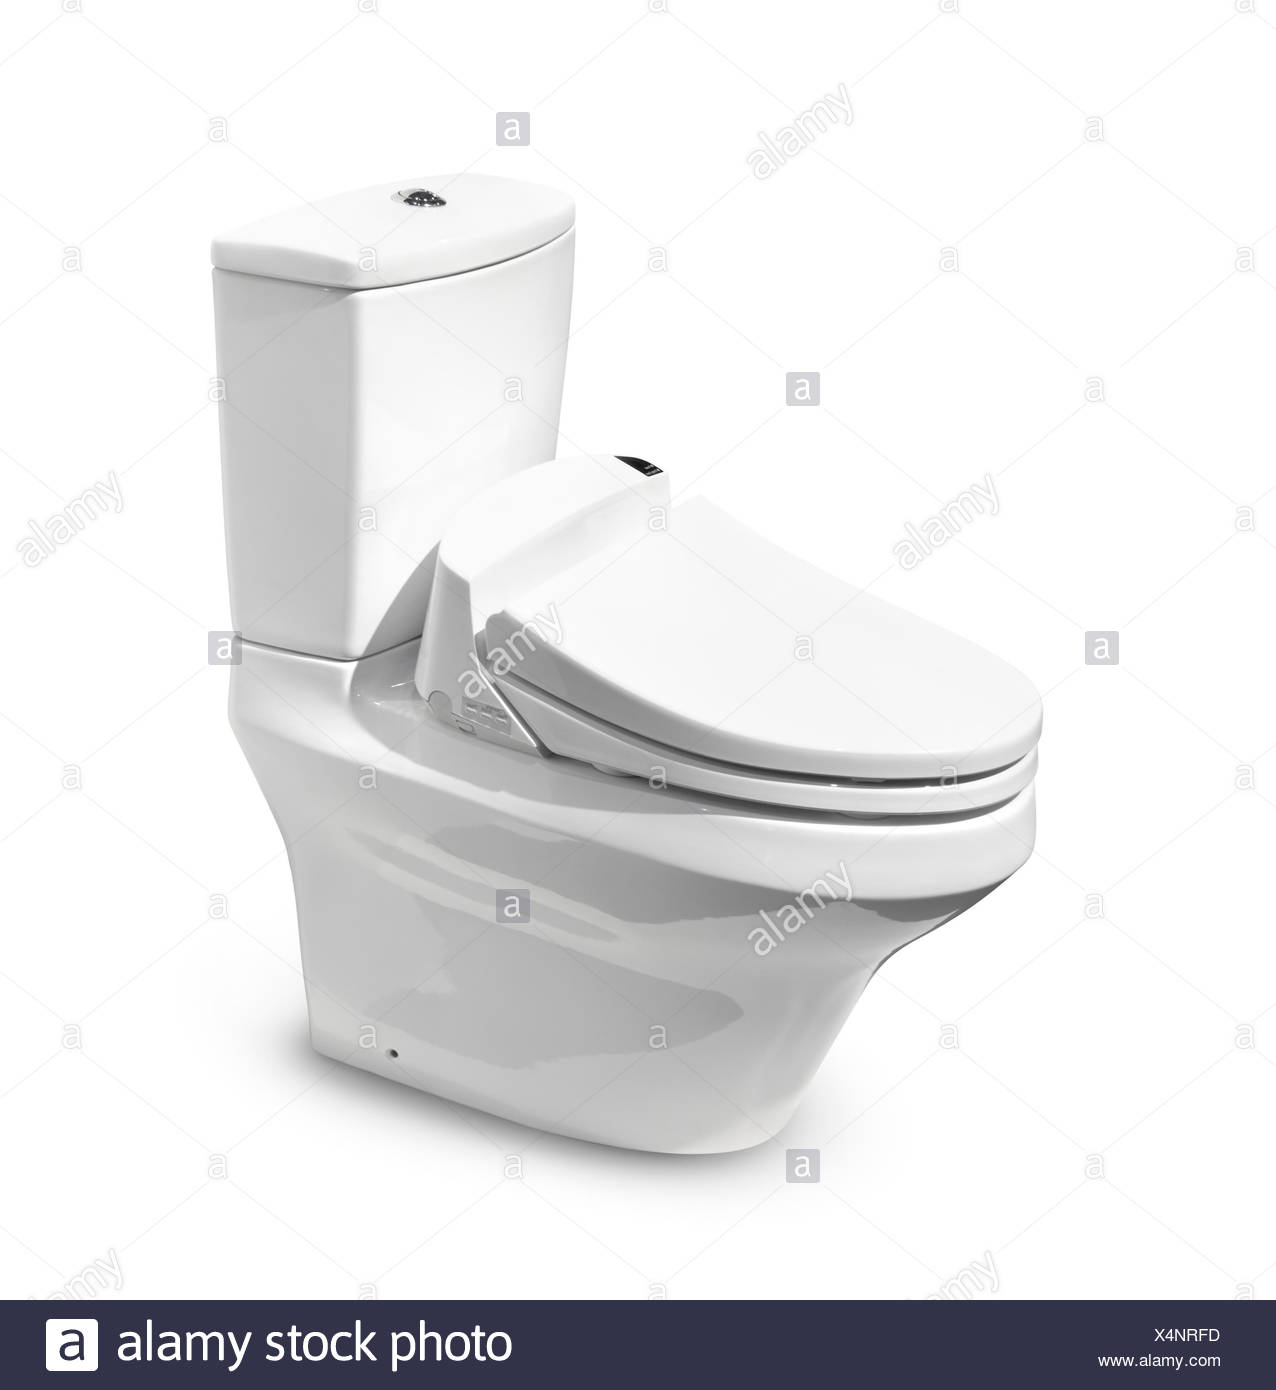 High-tech Toto toilet with Washlet seat Stock Photo: 278303969 - Alamy